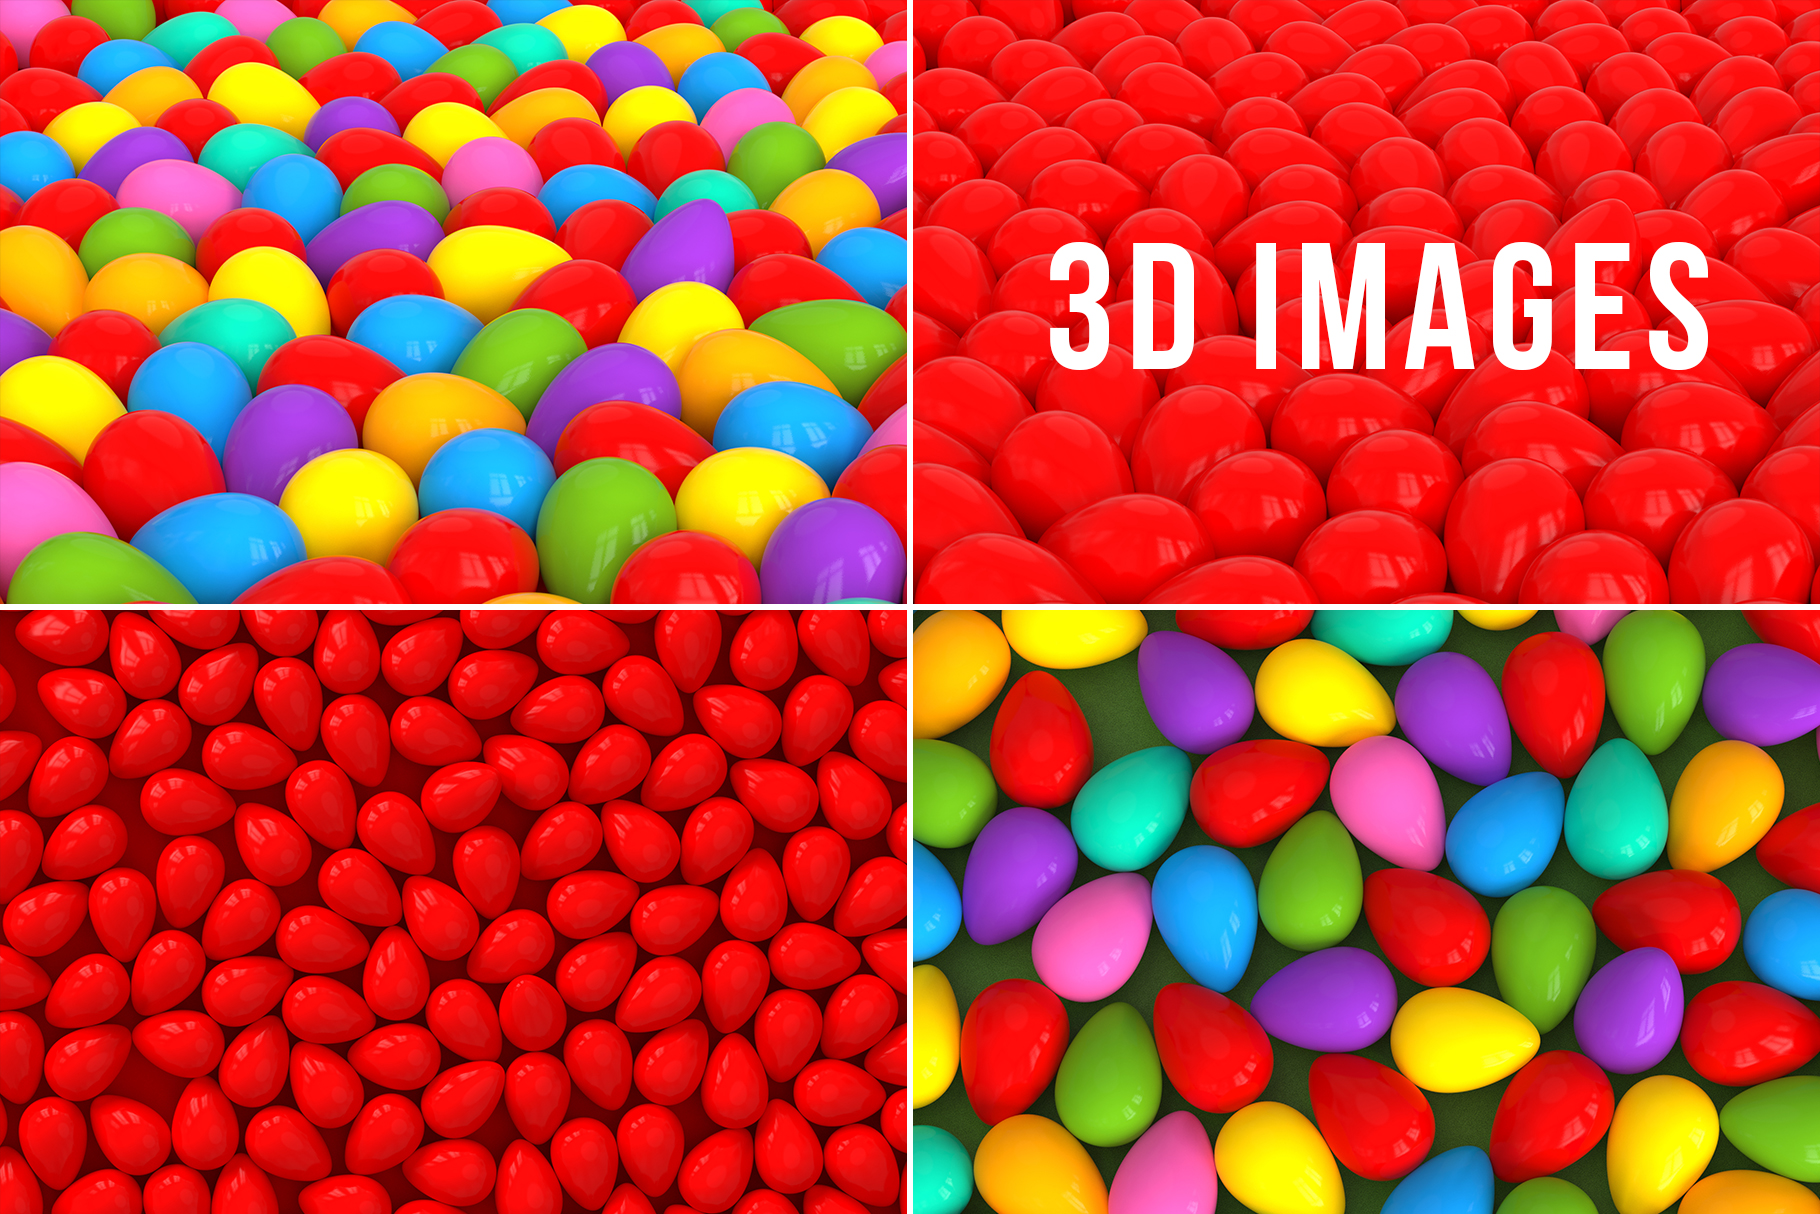 Easter Egg Mockups and Images example image 16